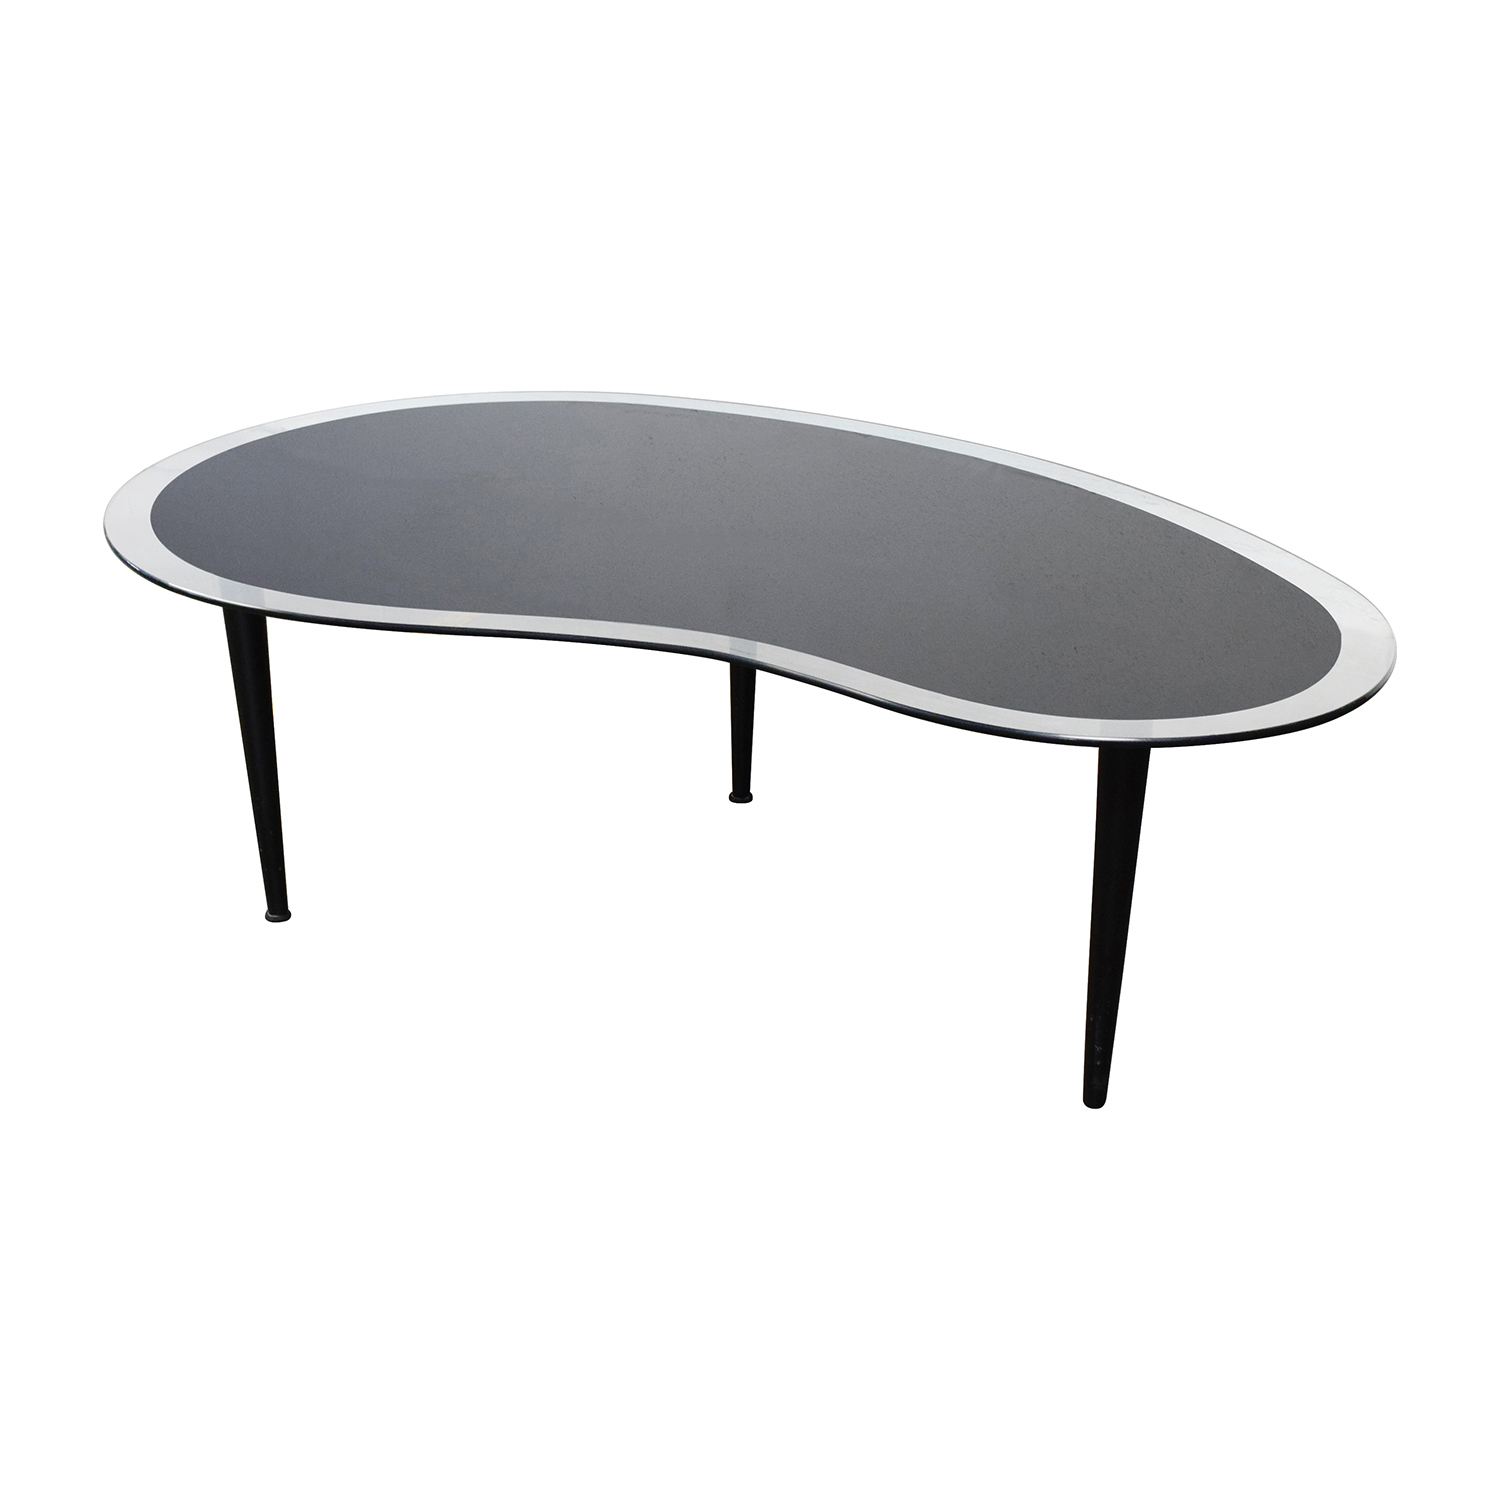 61 off bean shaped black and clear glass coffee table tables Used glass coffee table